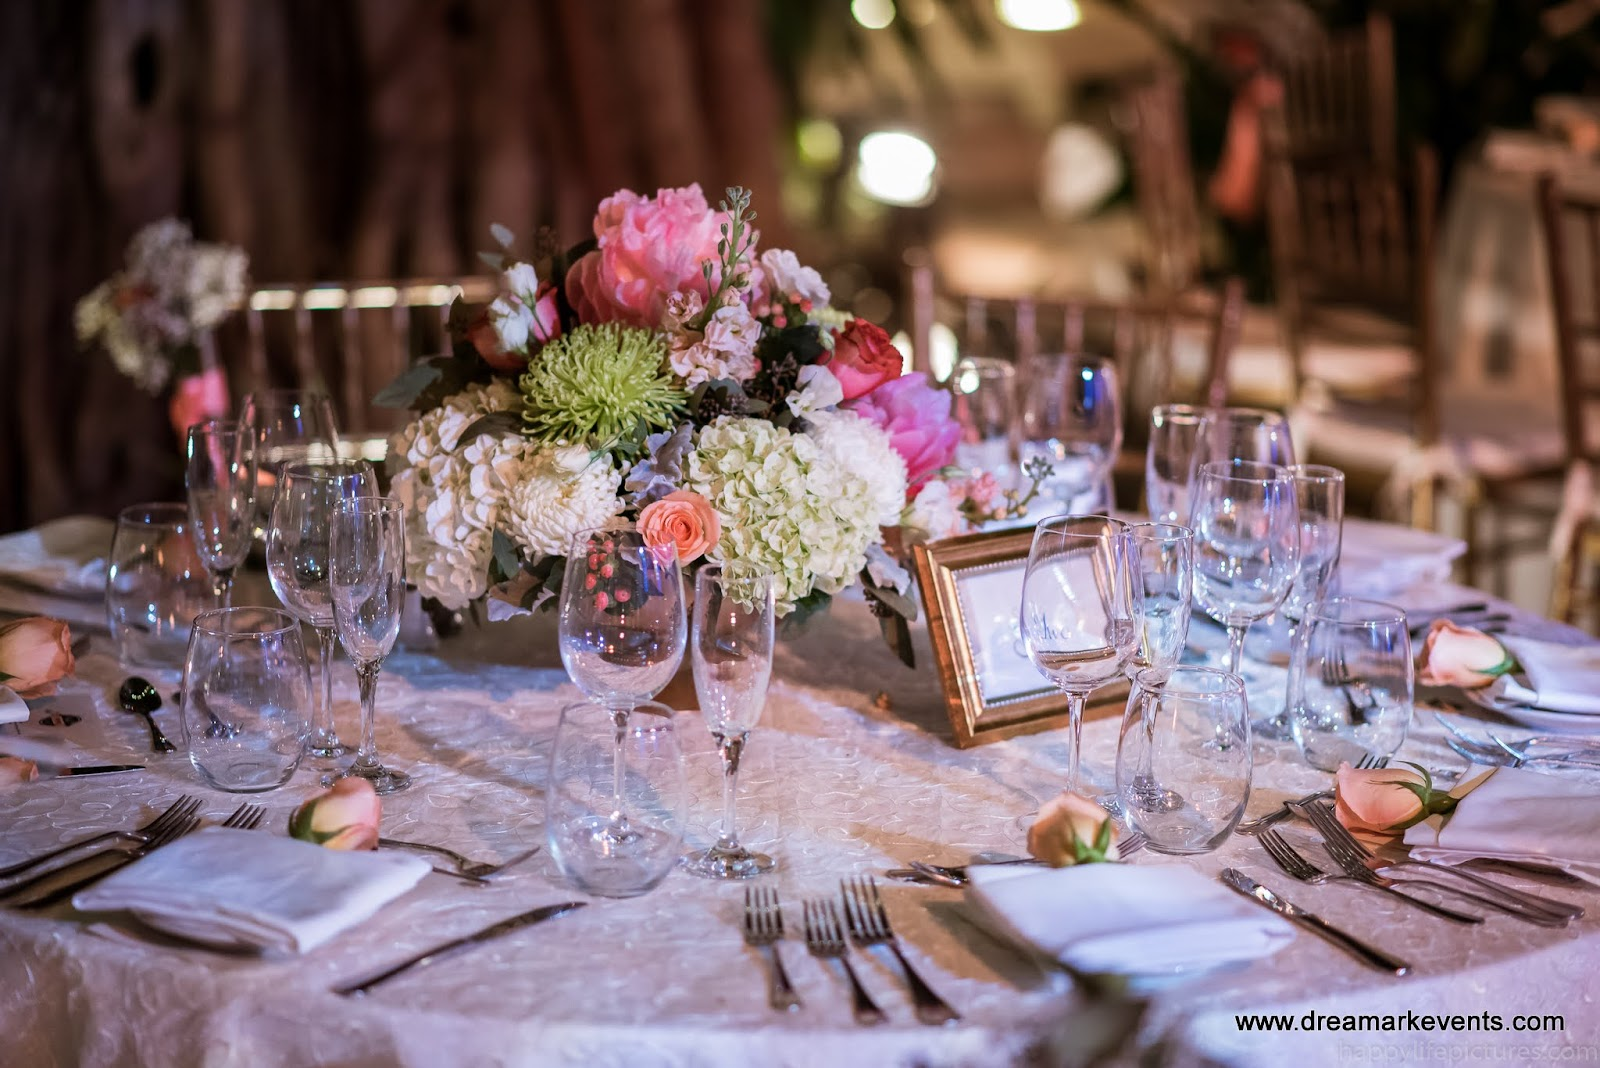 DreamARK Events Blog: Rustic Style Wedding decoration